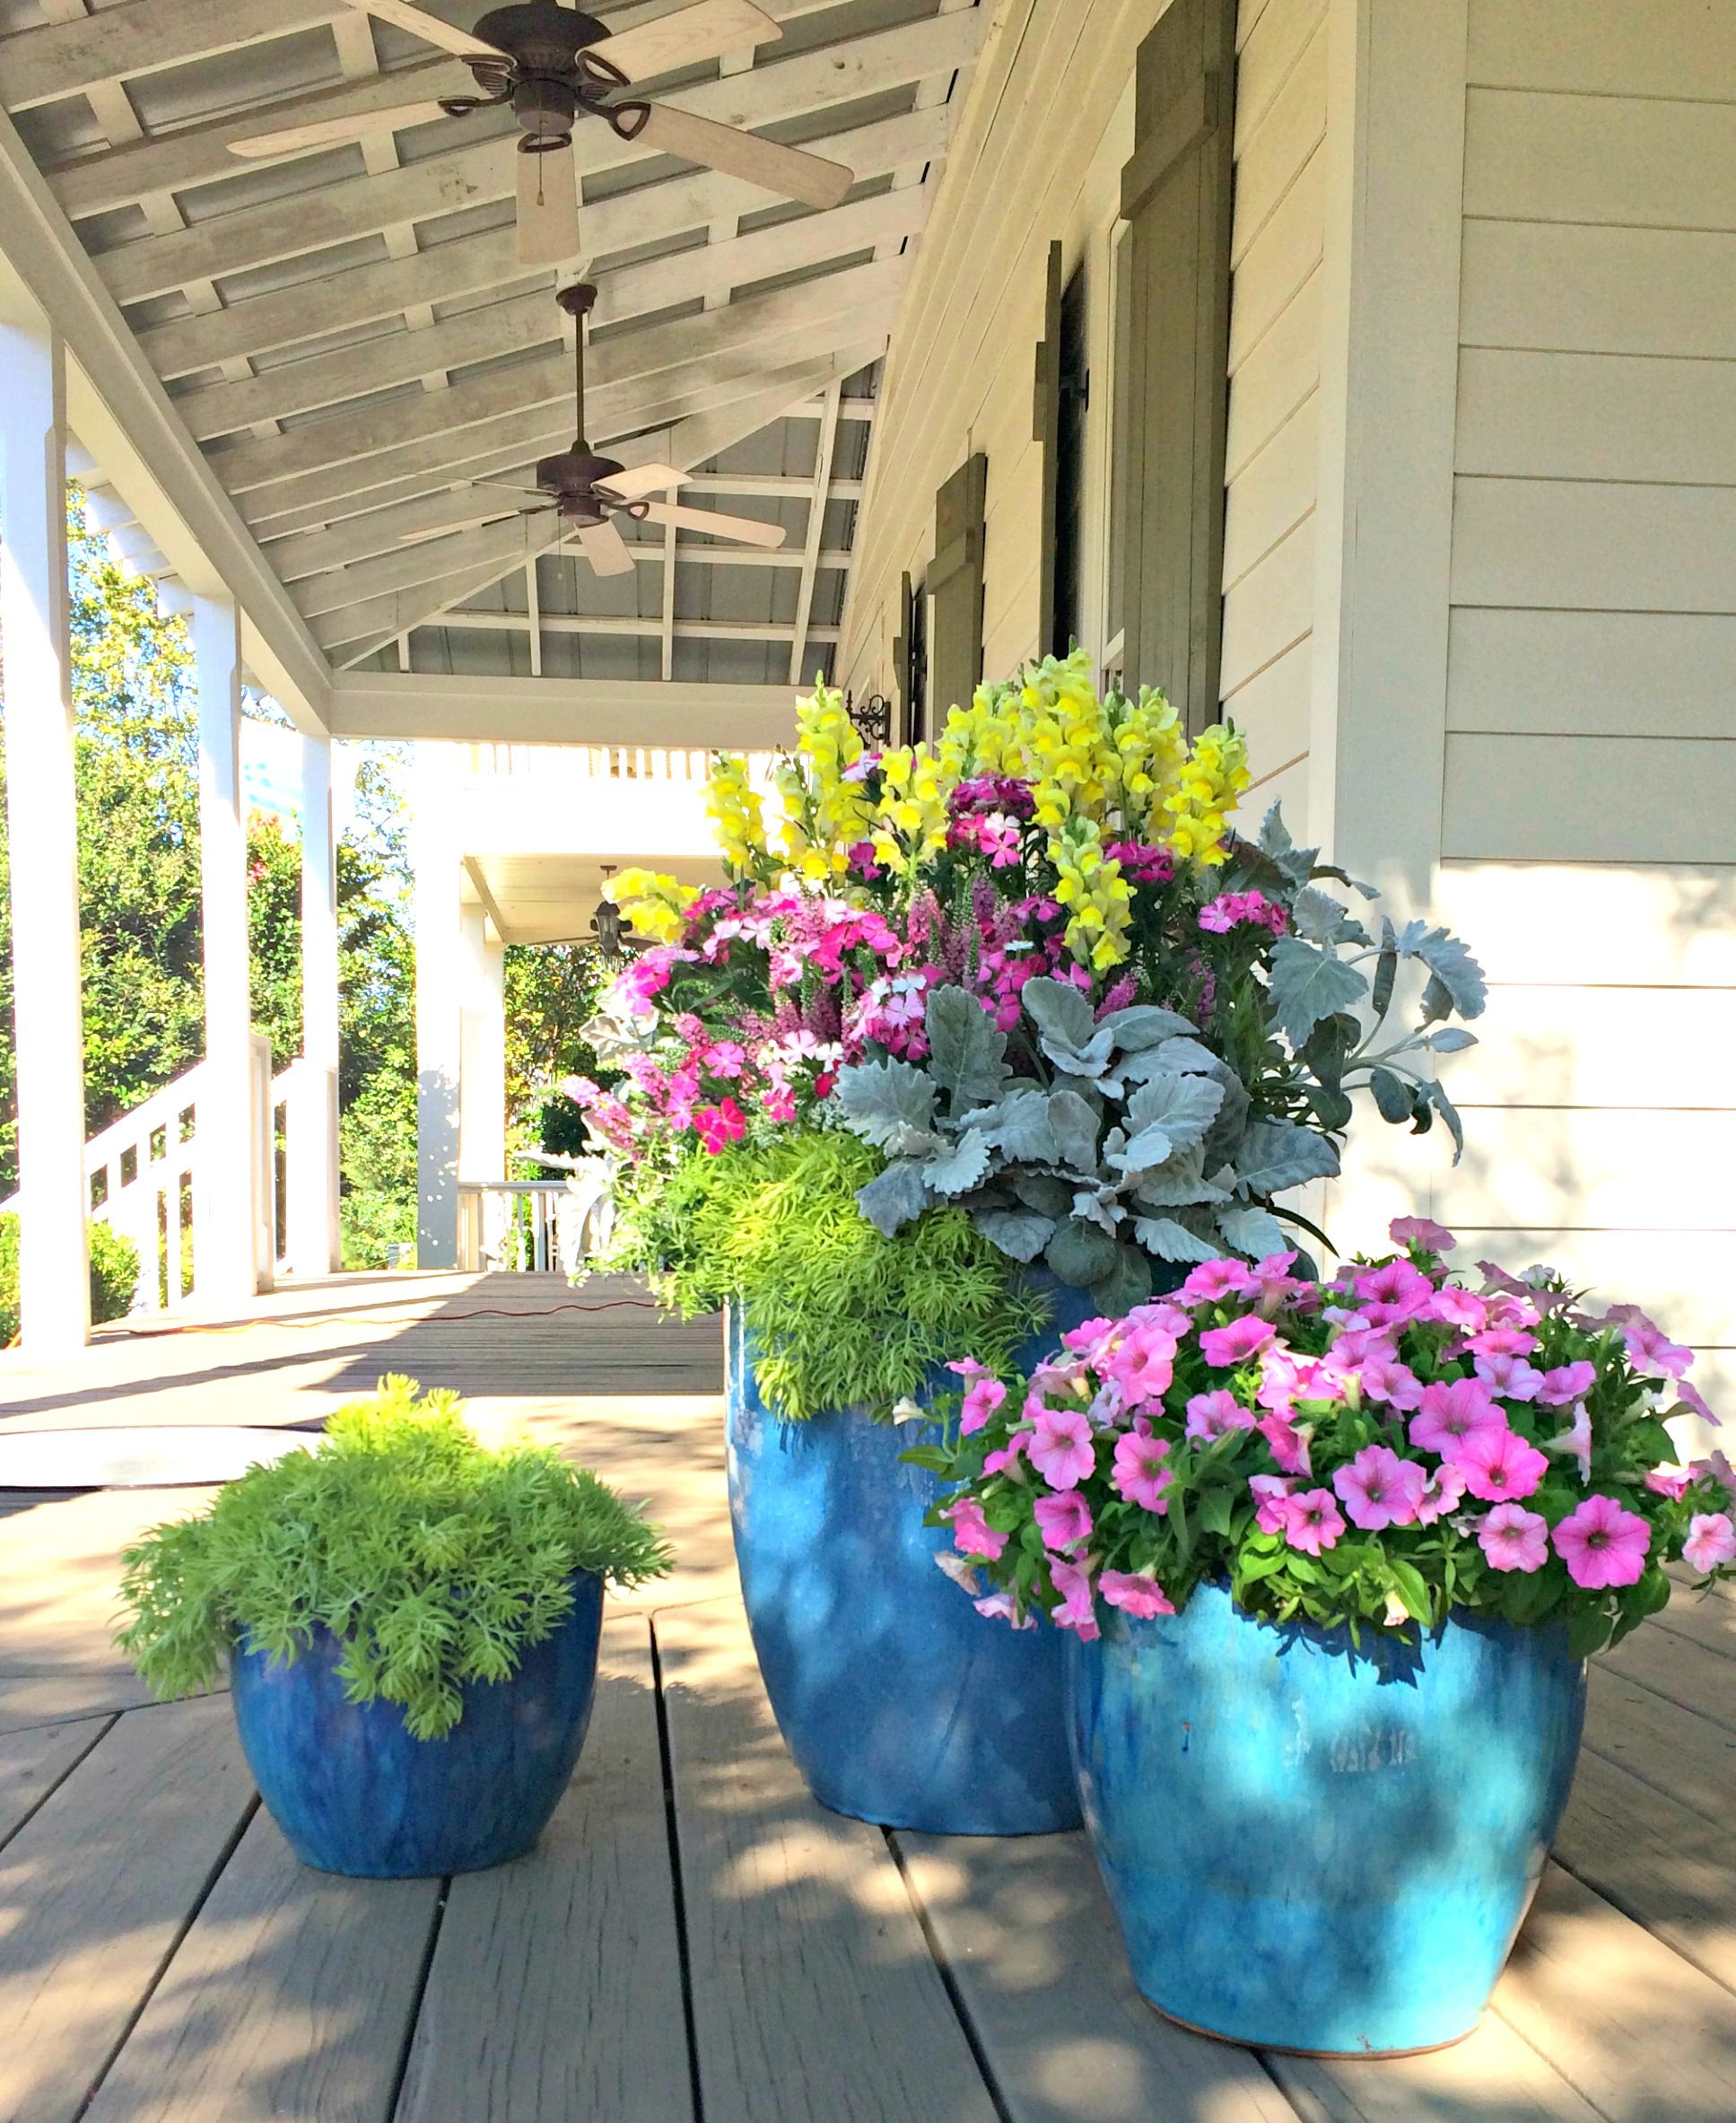 Celebrate Spring with one of our very own container gardens on the